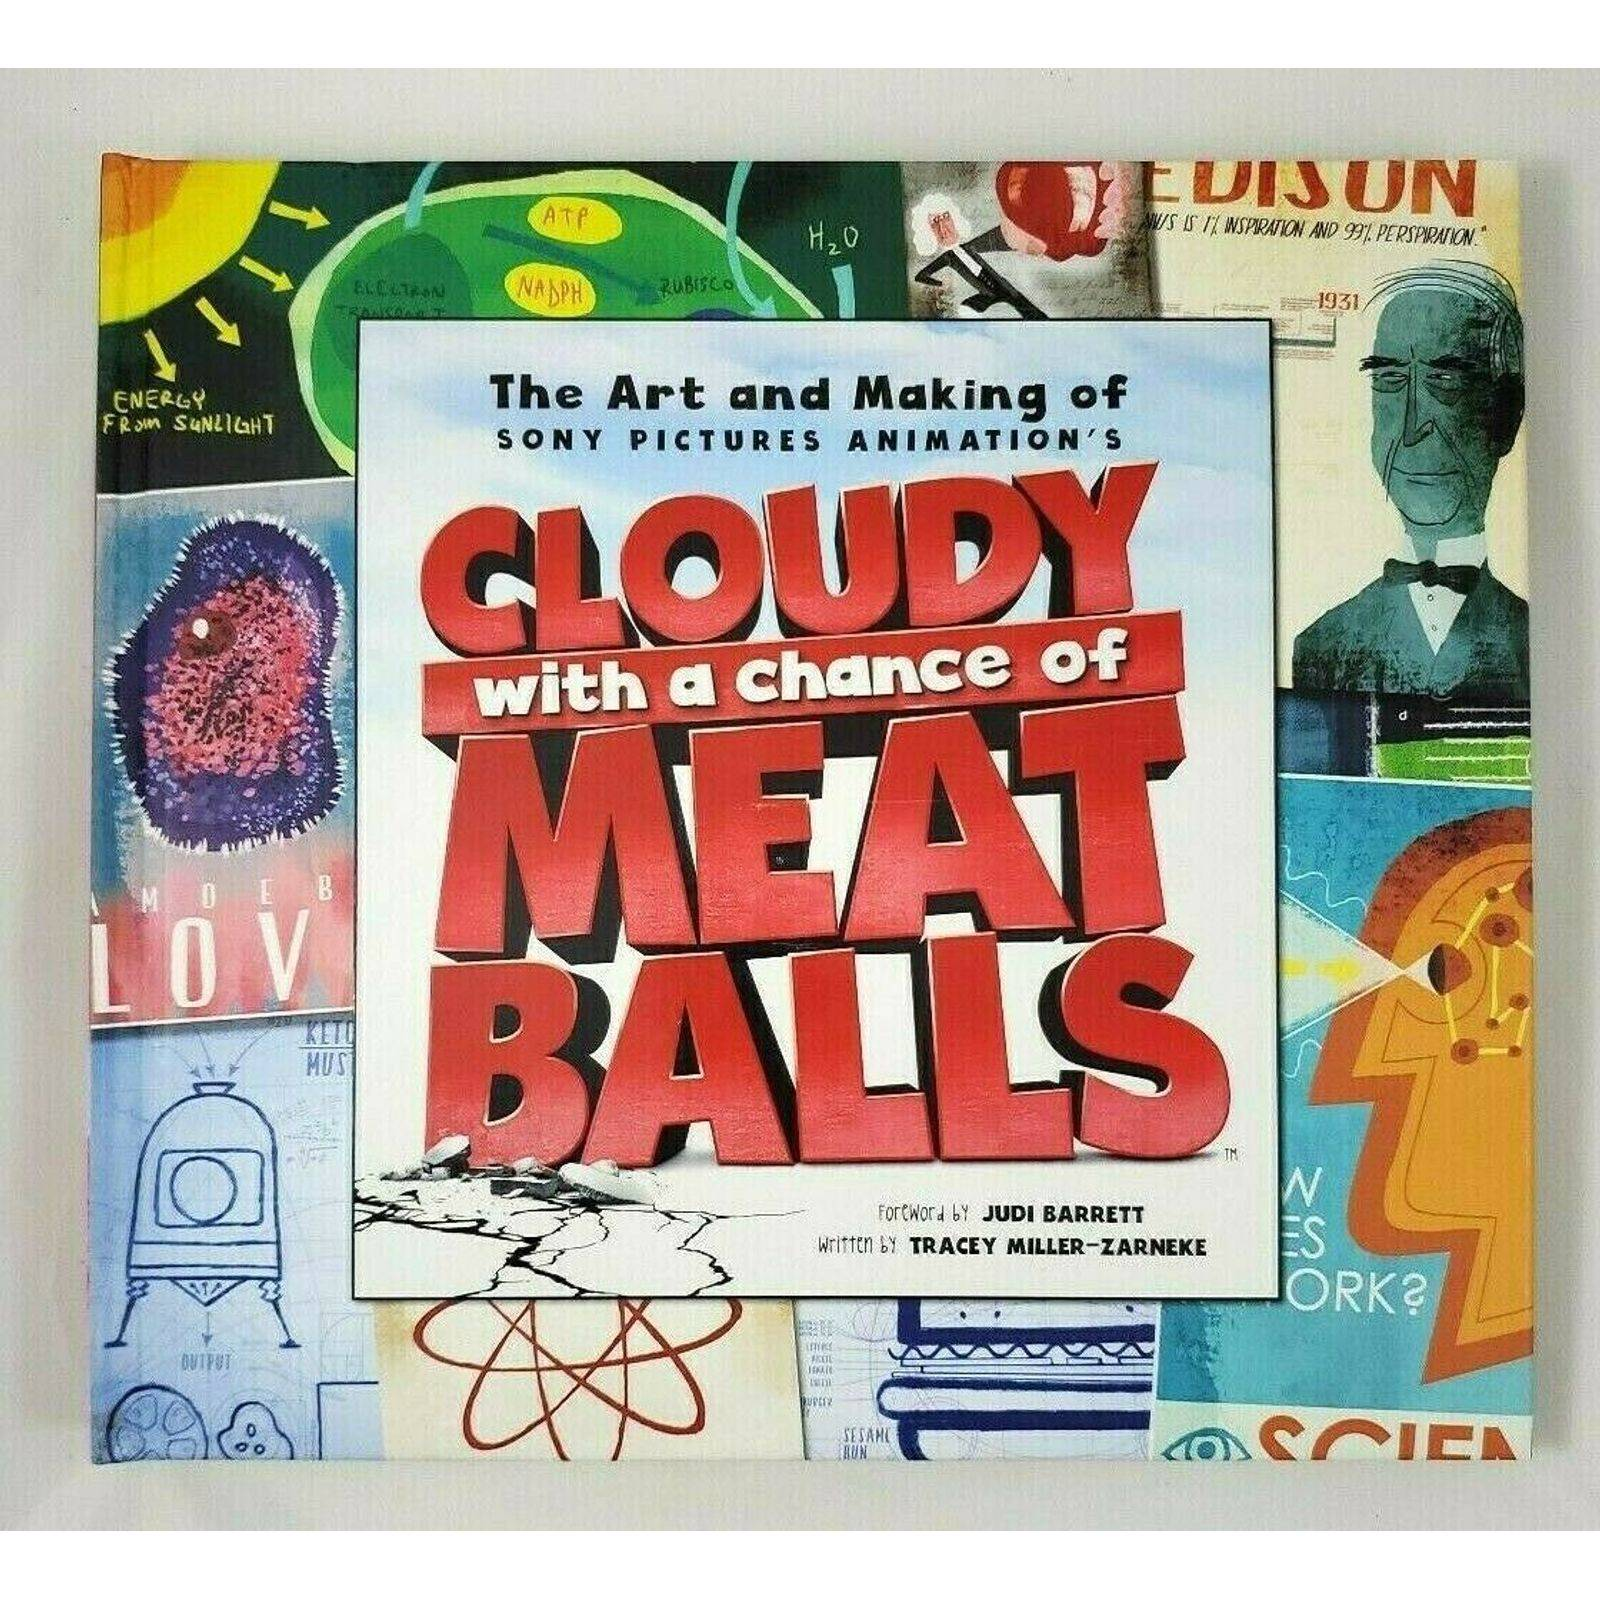 The Art of Cloudy w/ Chance of Meatballs